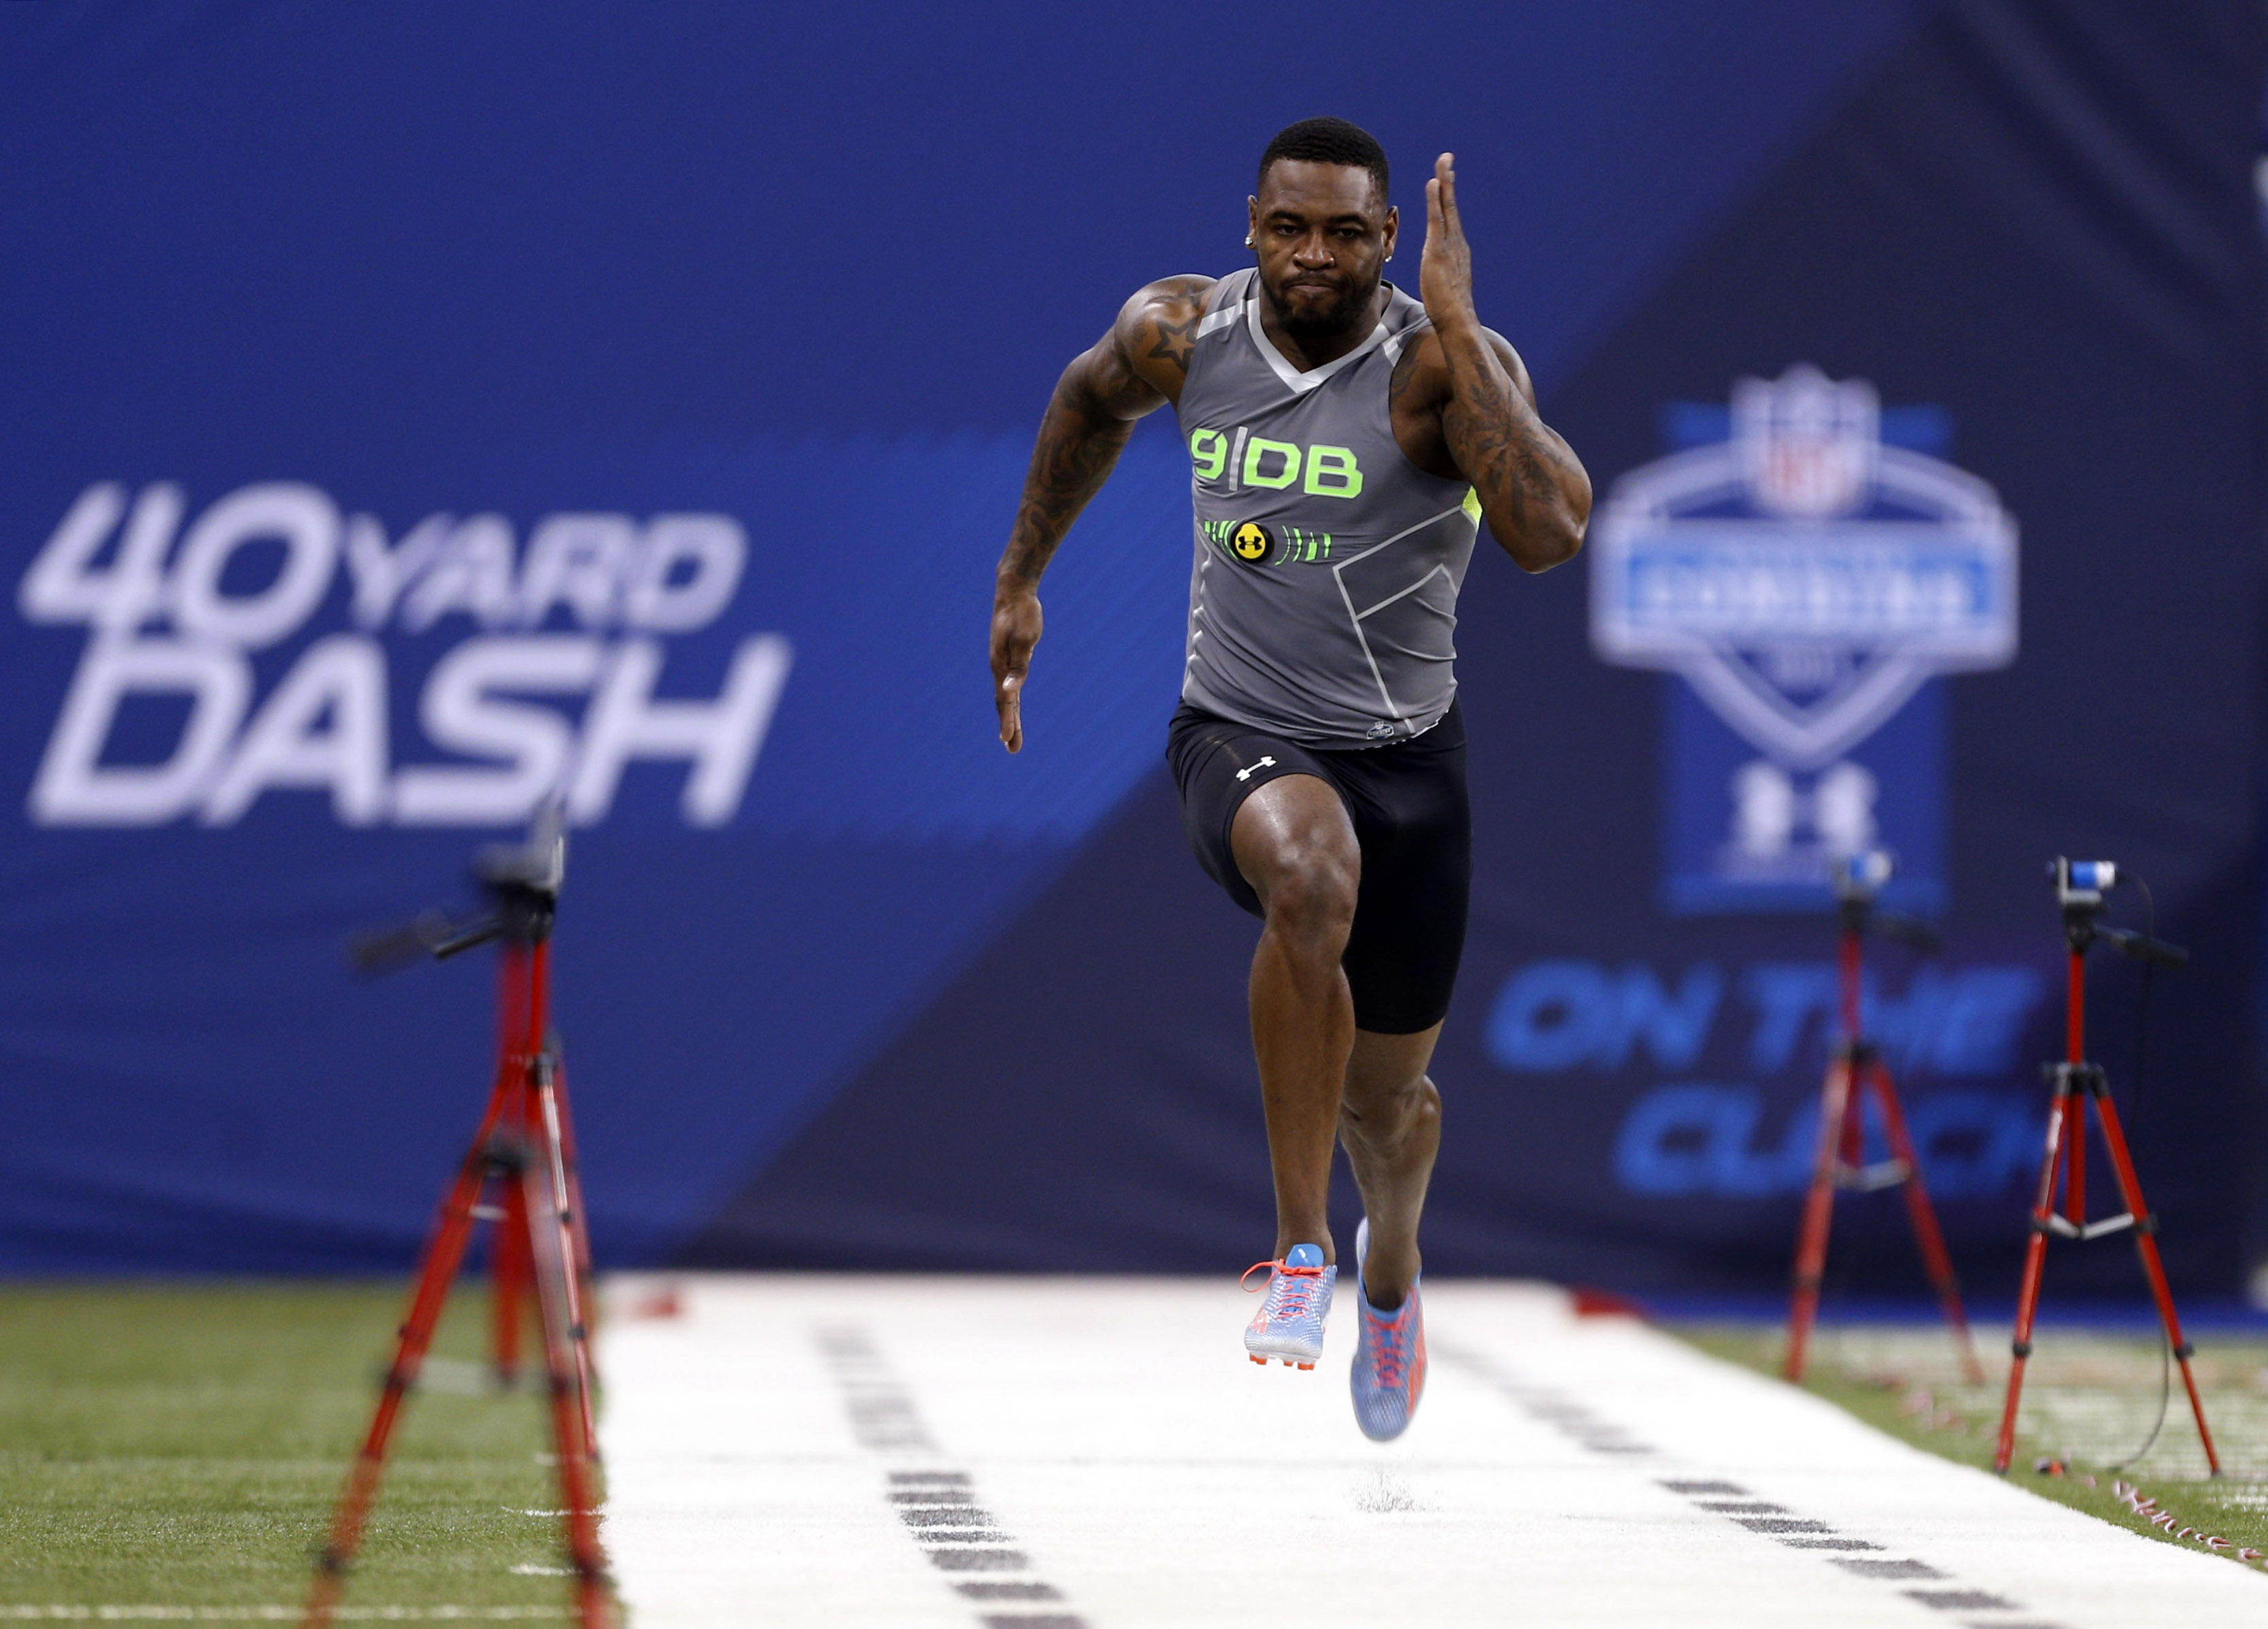 The fastest guys at the NFL Draft Combine will get Porsches